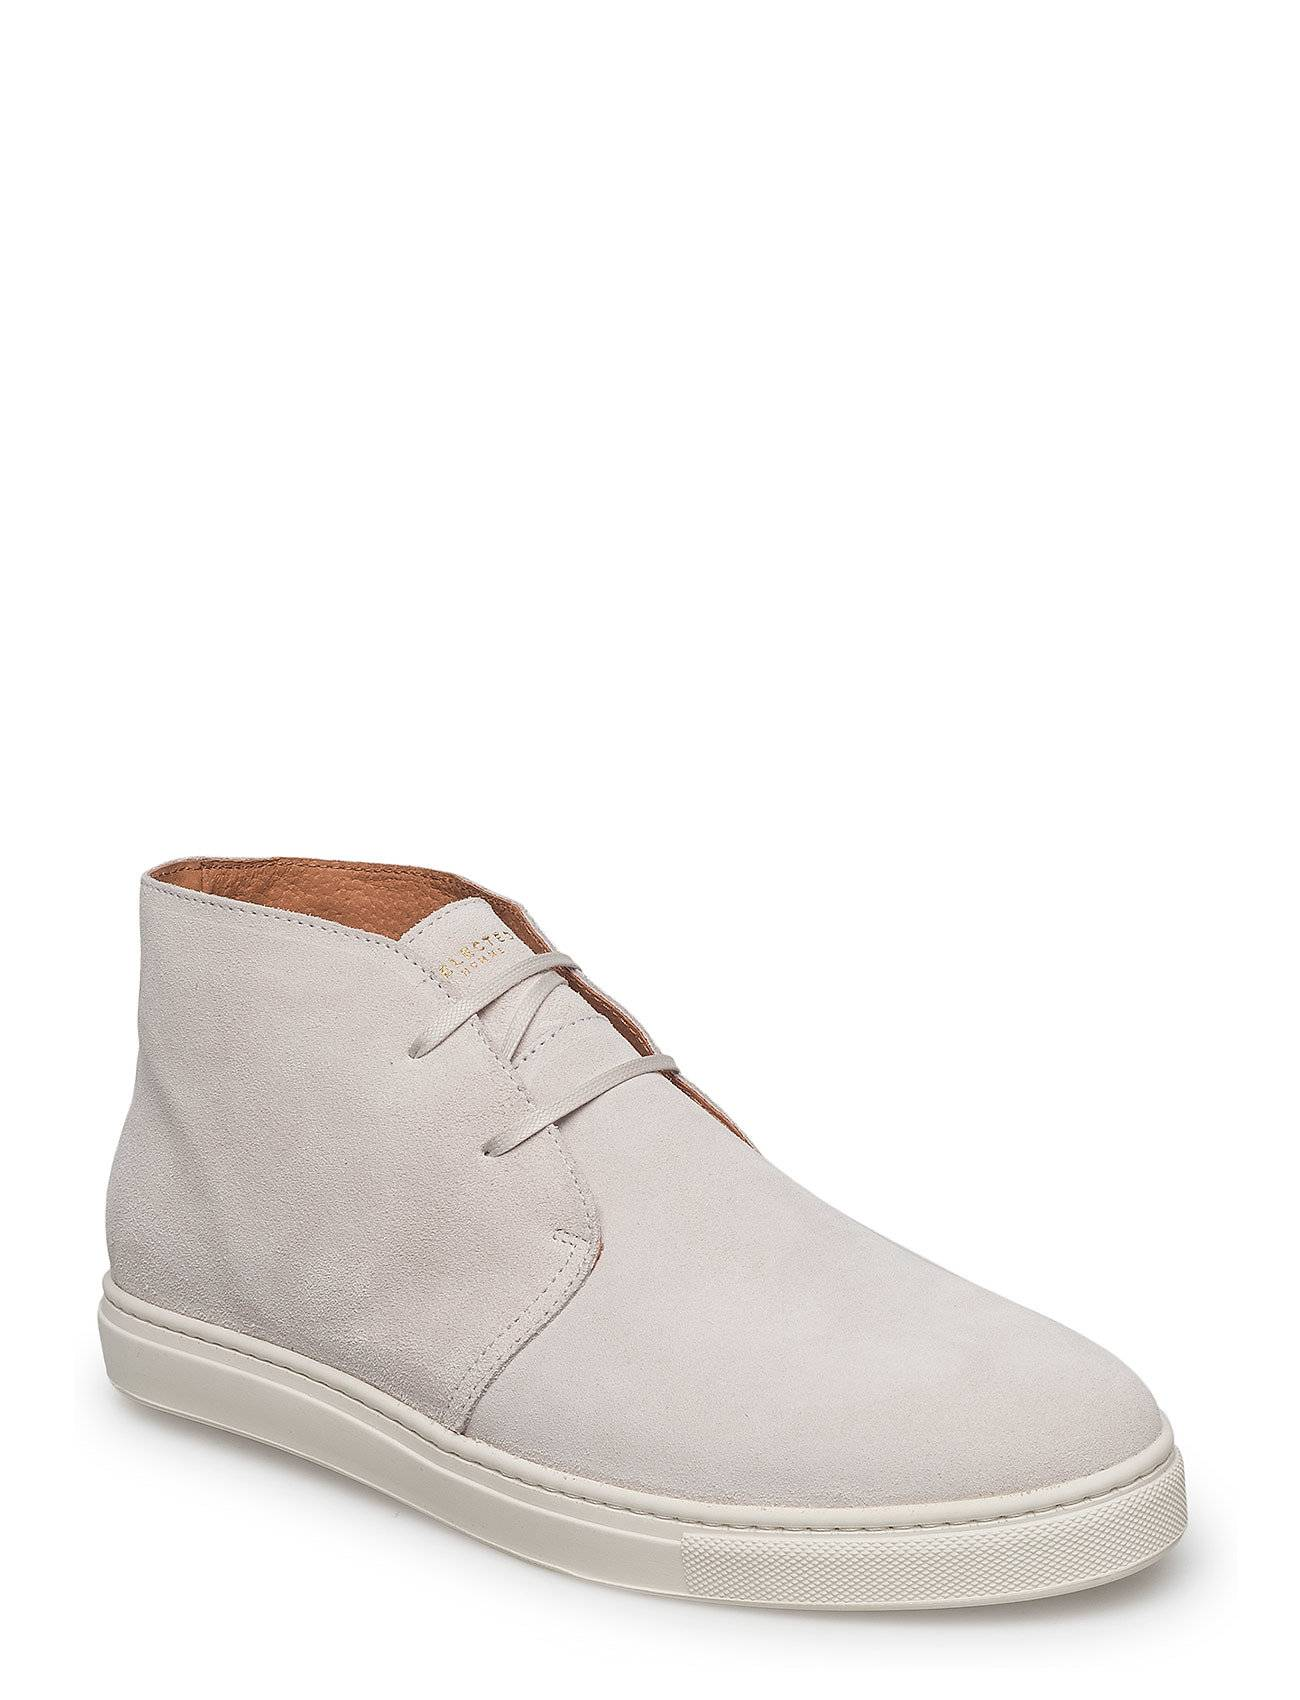 Selected Homme Shndempsey Chukka Sneaker Sts